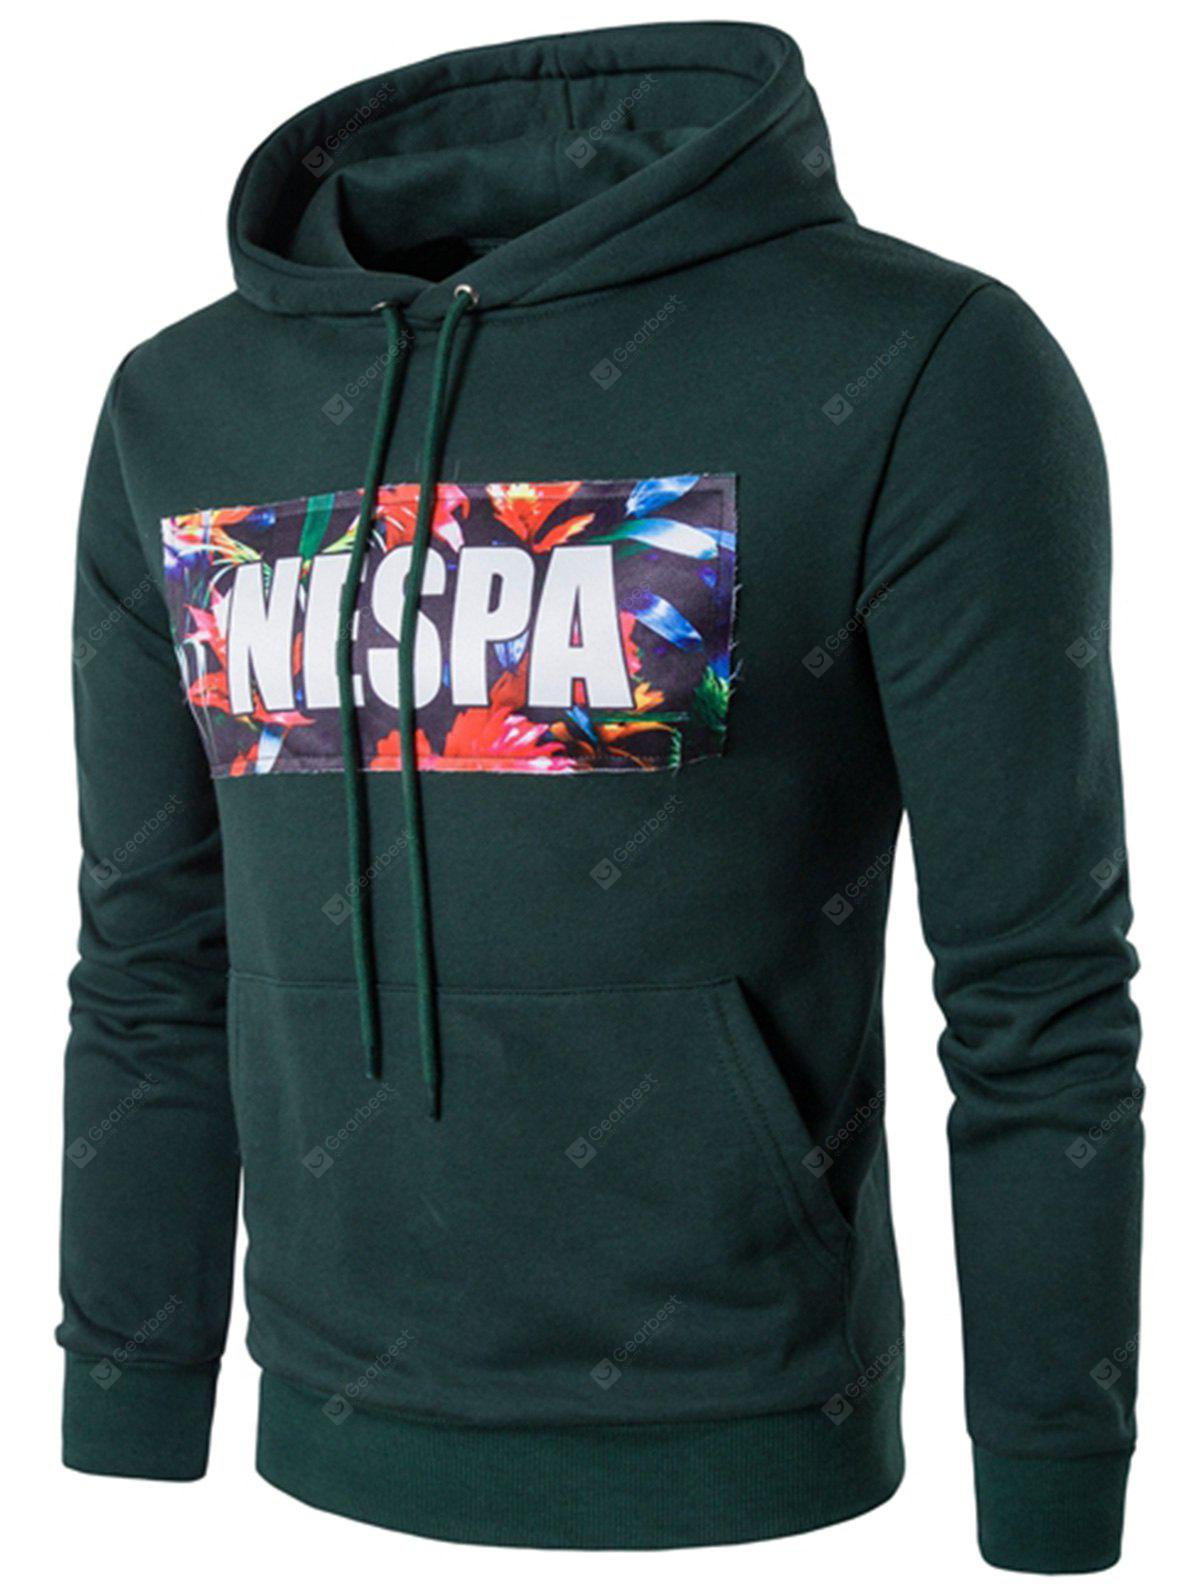 Hooded Graphic Print Applique Pullover Hoodie